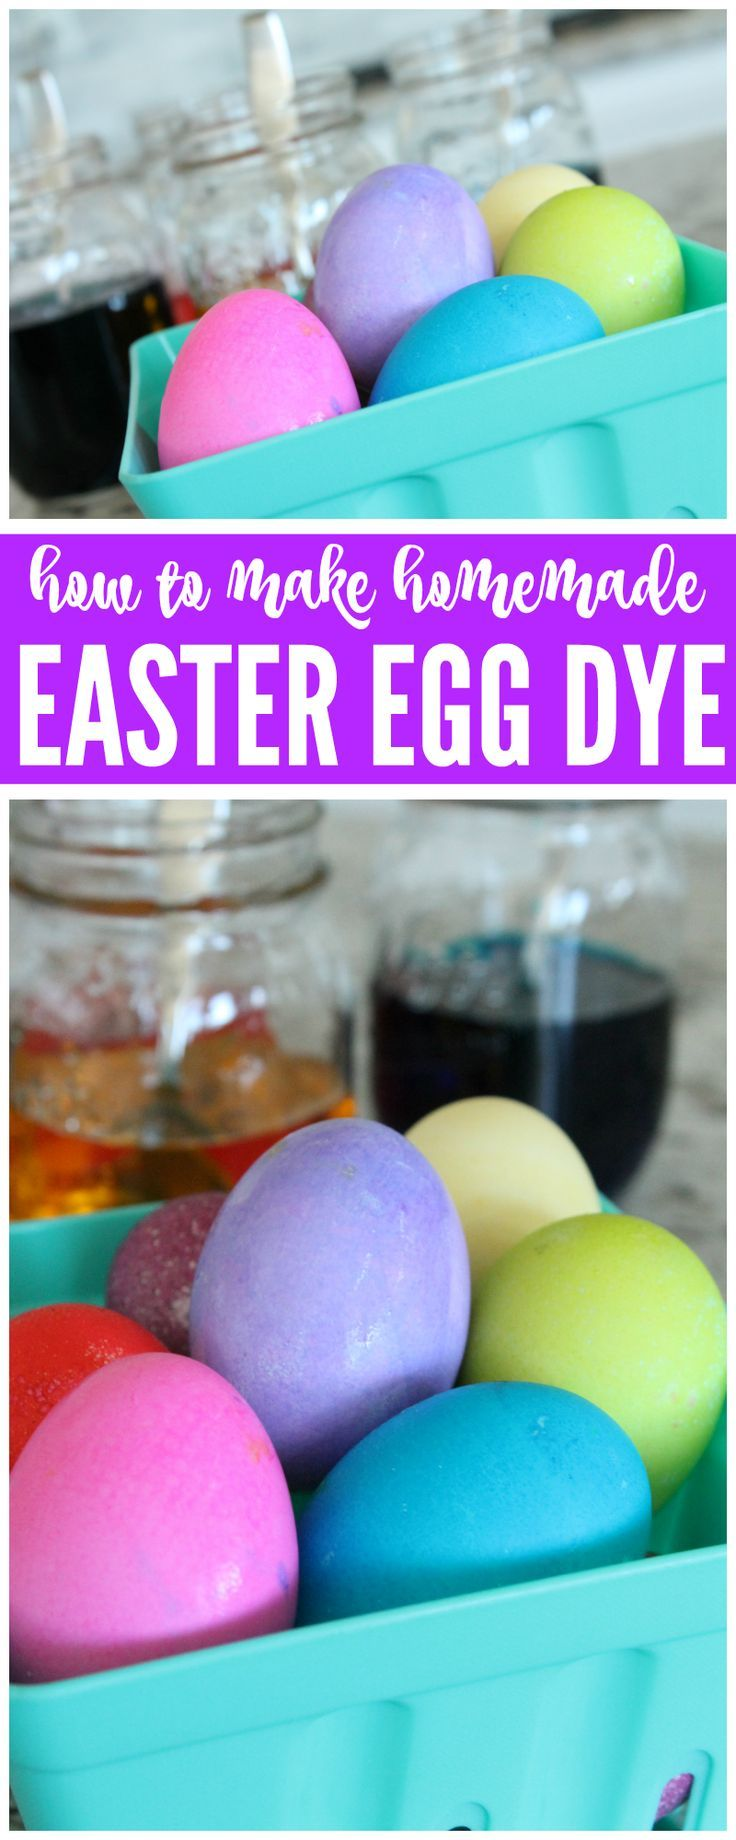 Homemade easter egg dye recipe this is a fun way to decorate eggs homemade easter egg dye recipe this is a fun way to decorate eggs and diy forumfinder